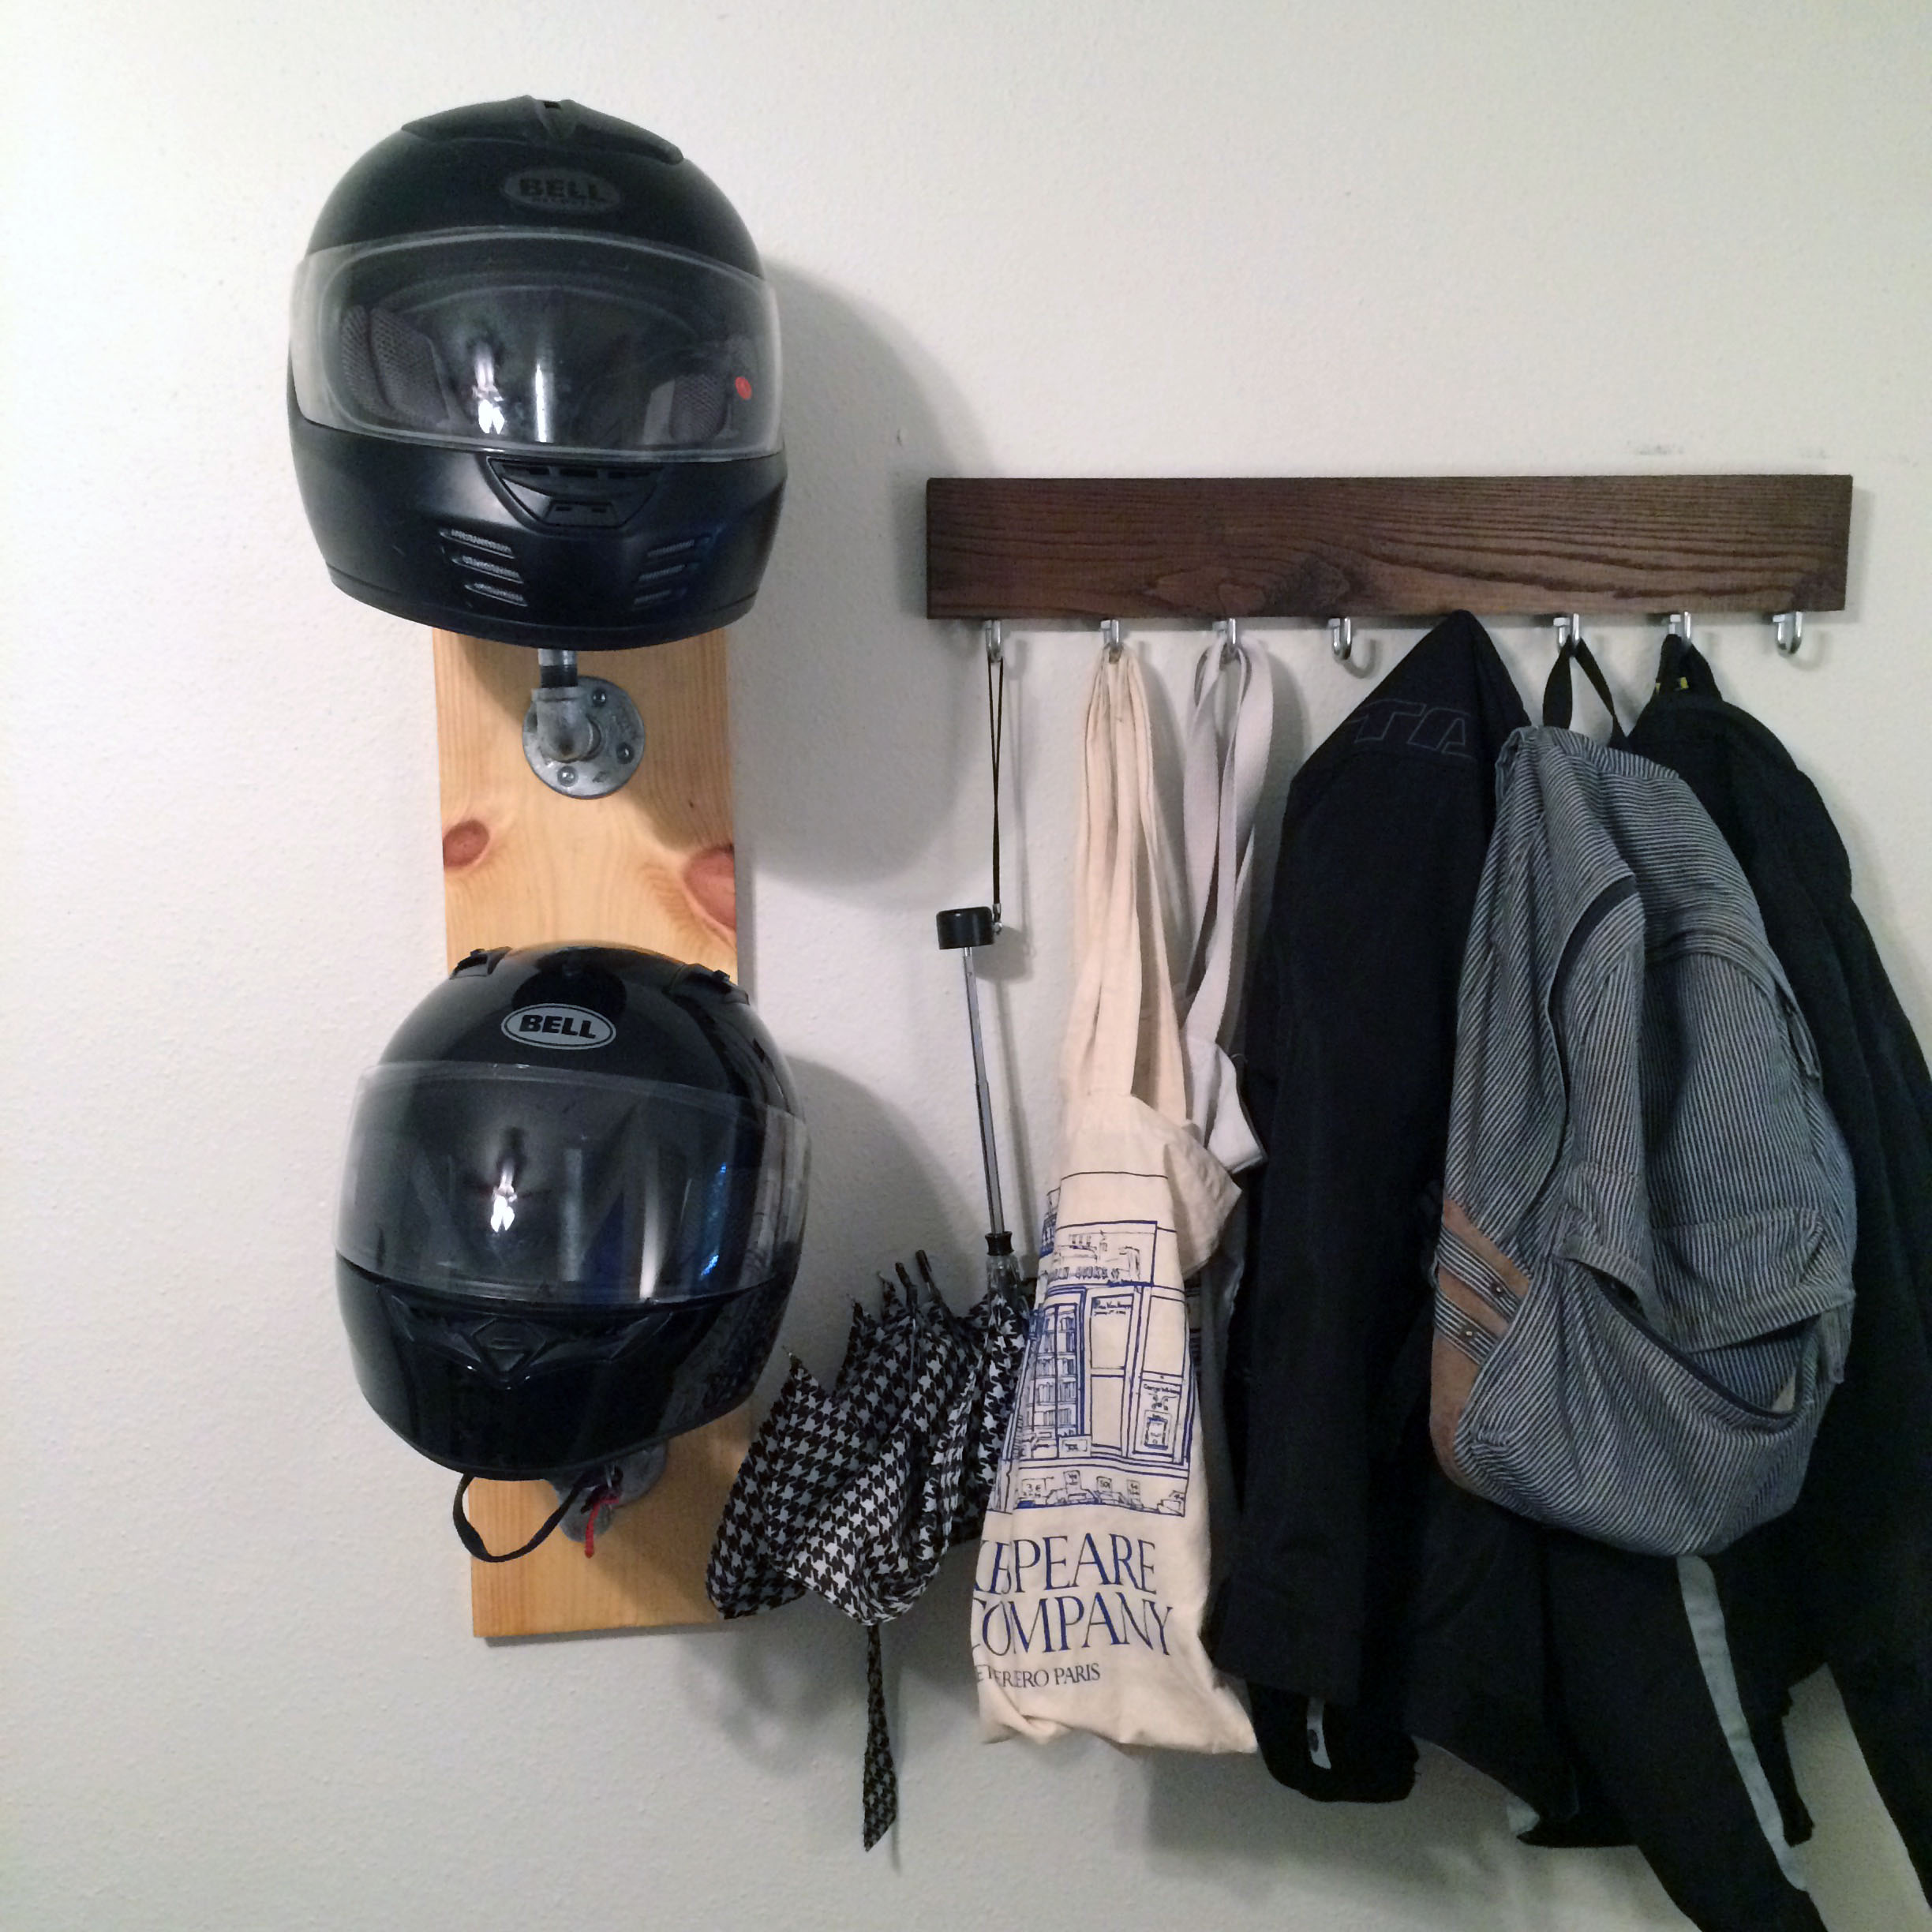 Rangement Casque Moto Easy Diy Helmet Rack In 30 Minutes Or Less Ridewell